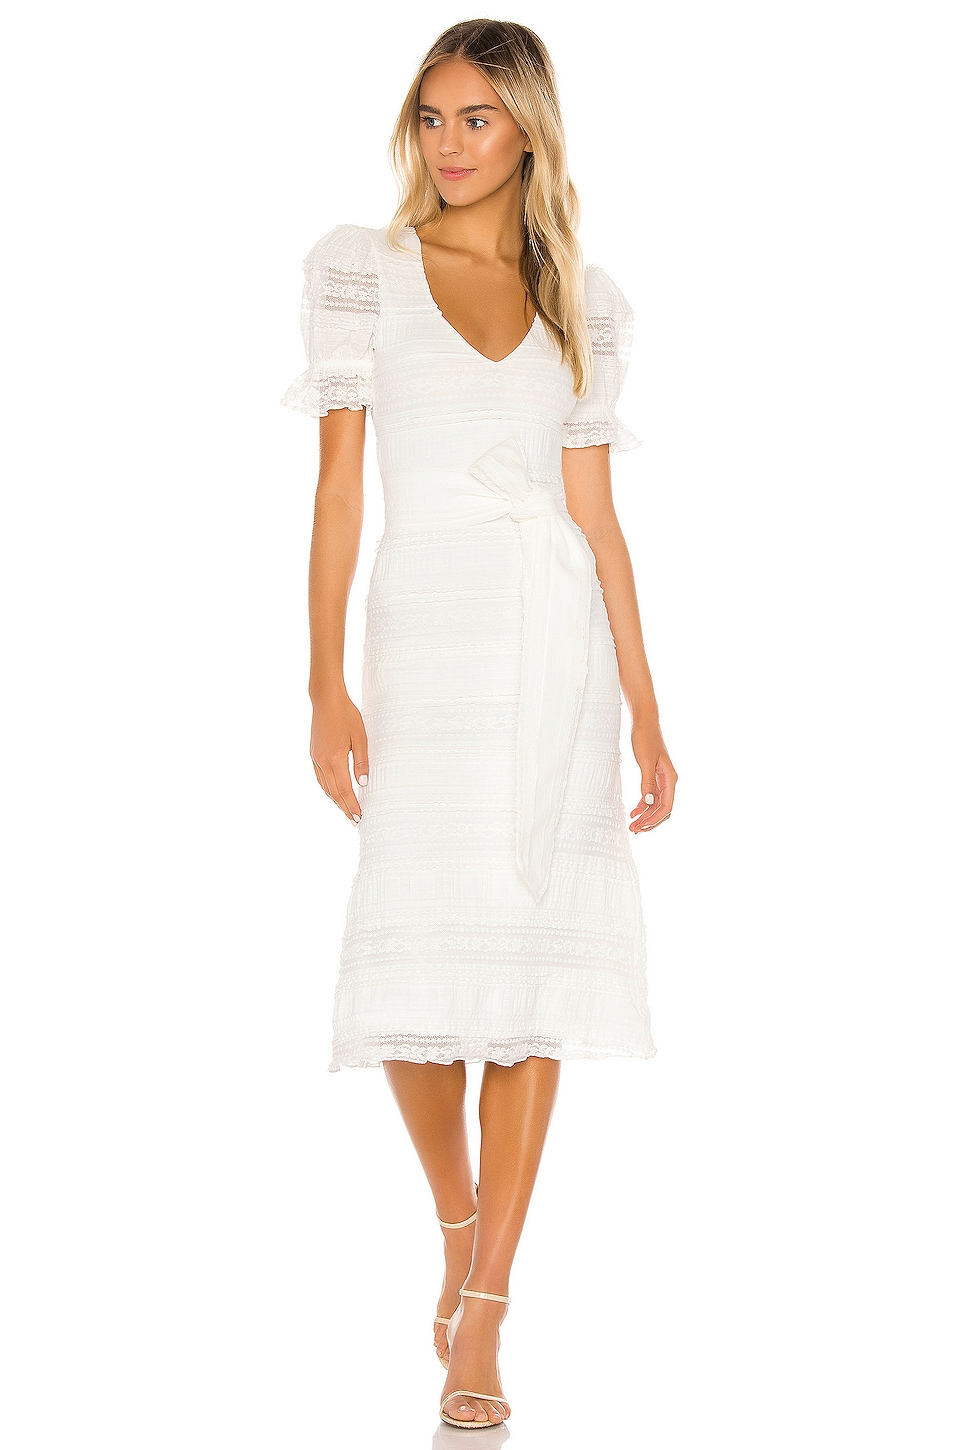 Quinn Midi Dress             Tularosa                                                                                                       CA$ 226.98 8